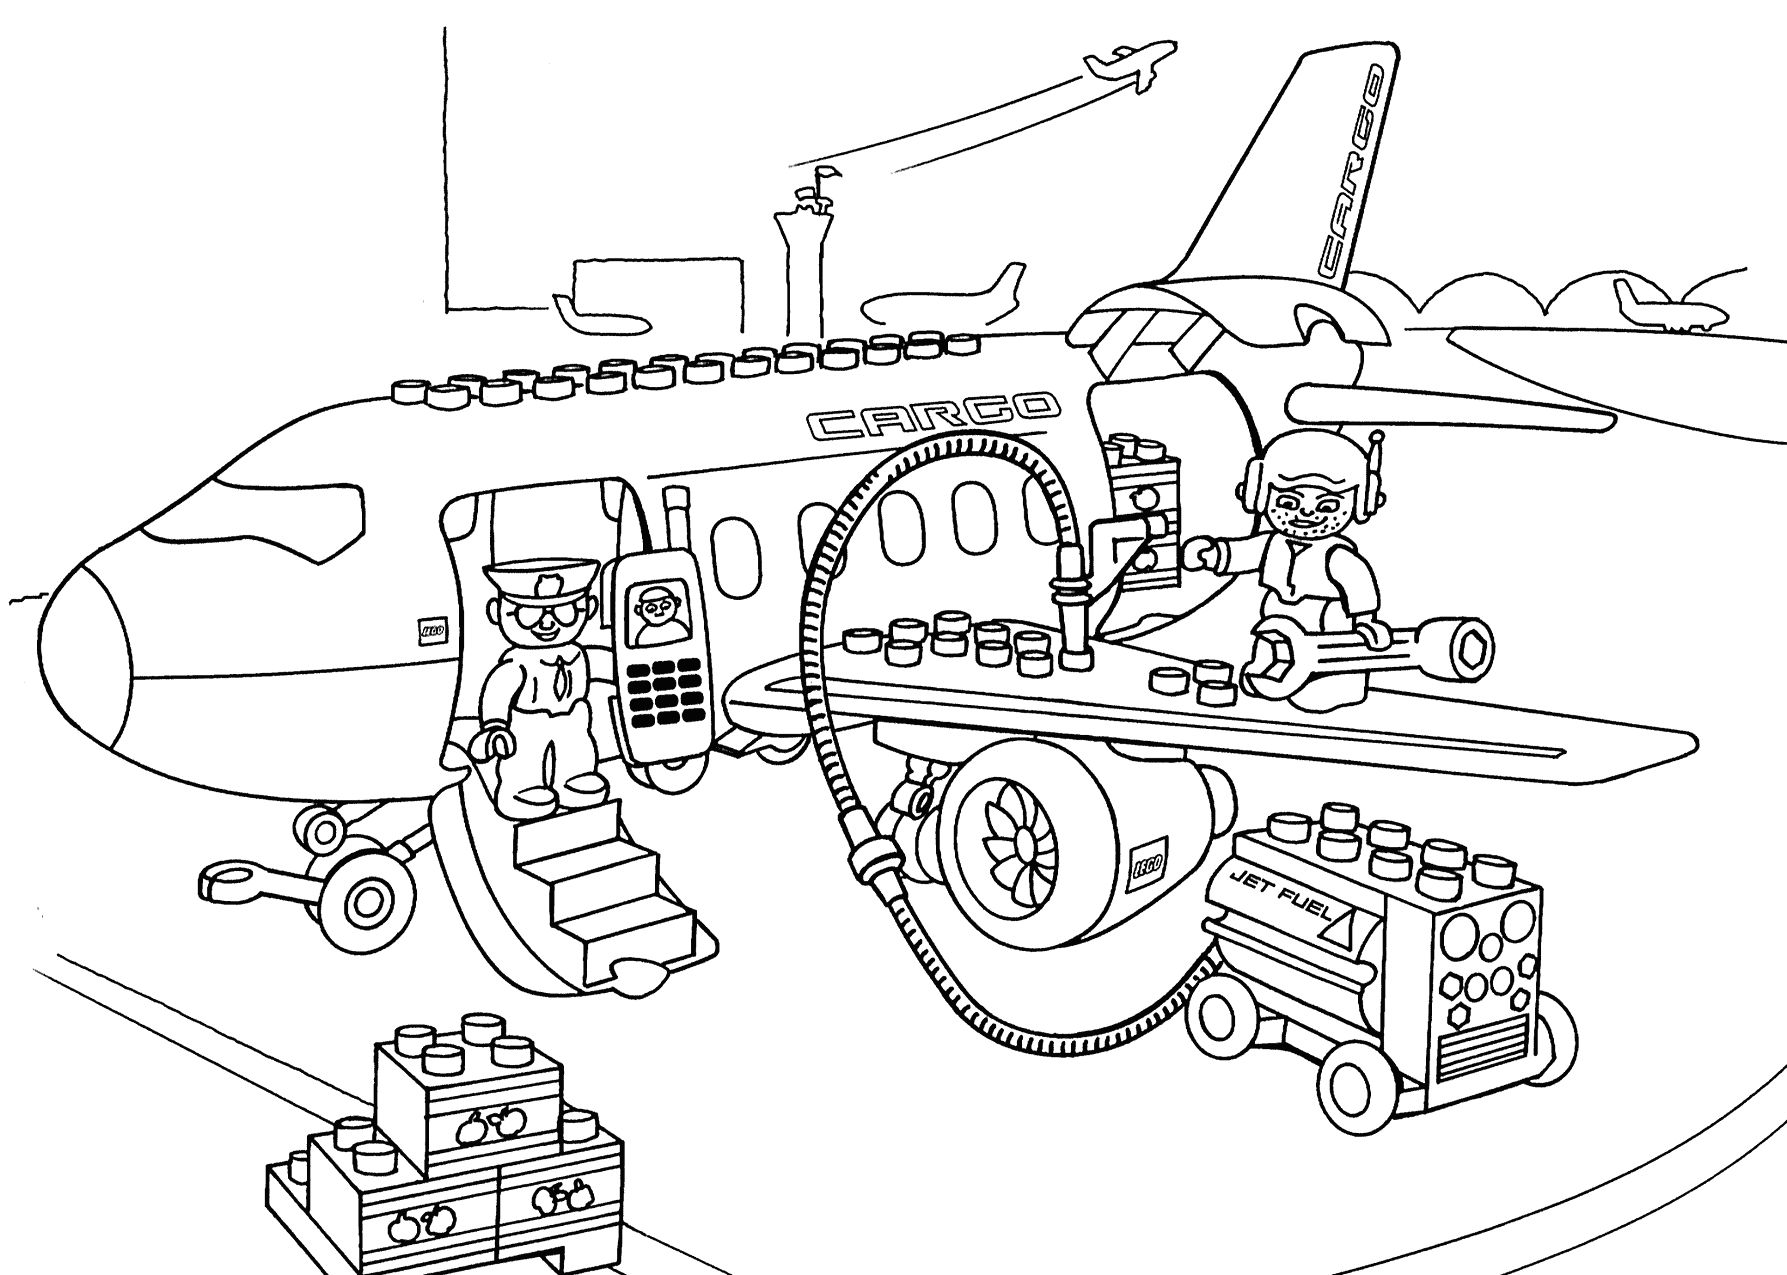 lego city train coloring pages lego city coloring pages image search results lego pages lego city coloring train